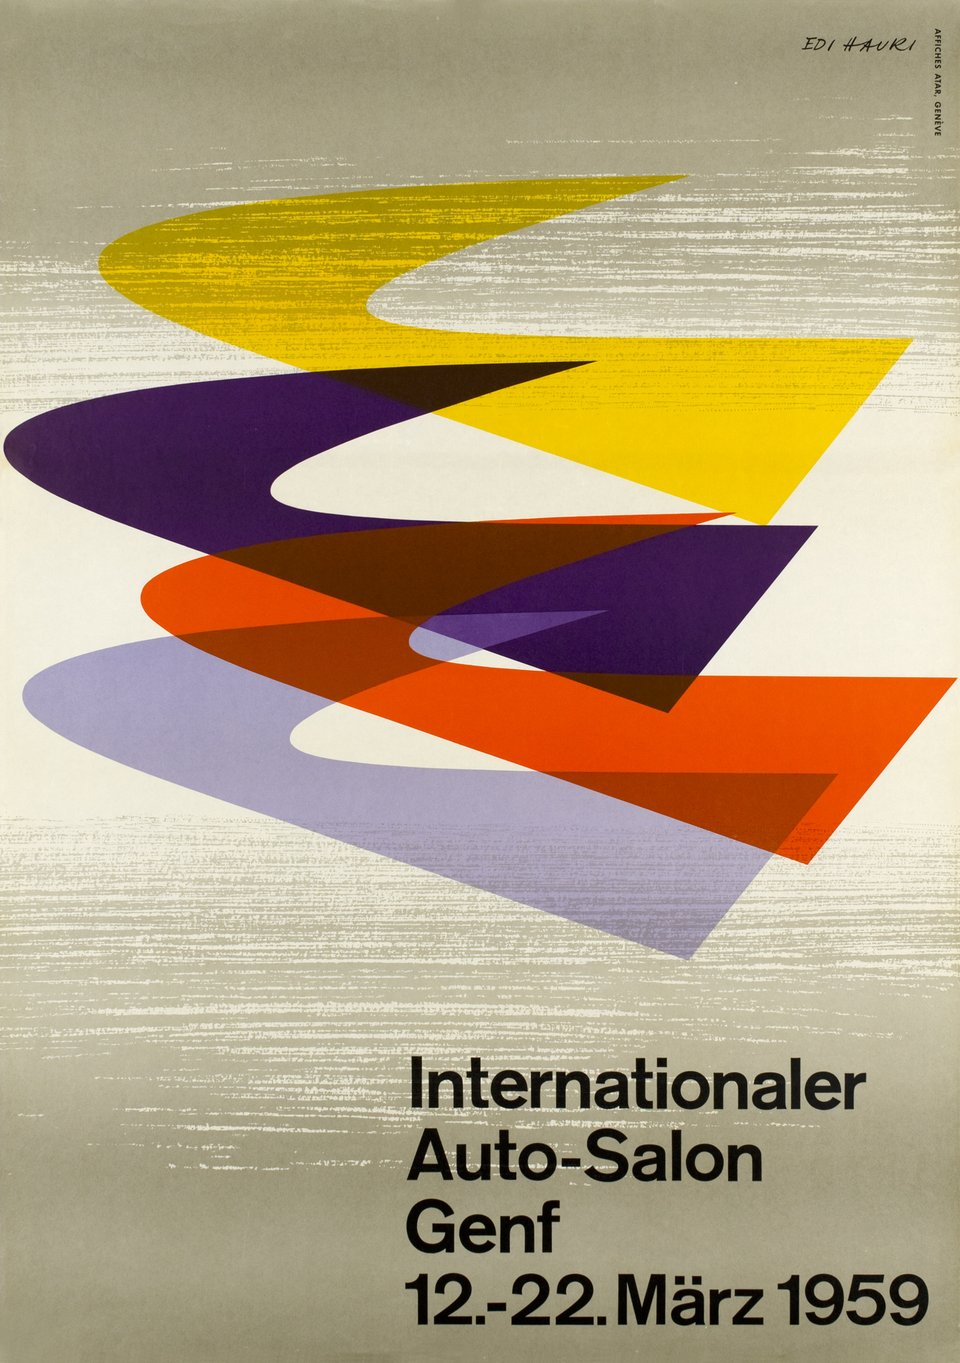 Genf, Internationaler Auto-Salon 1959 – Affiche ancienne – Edi HAURI – 1959